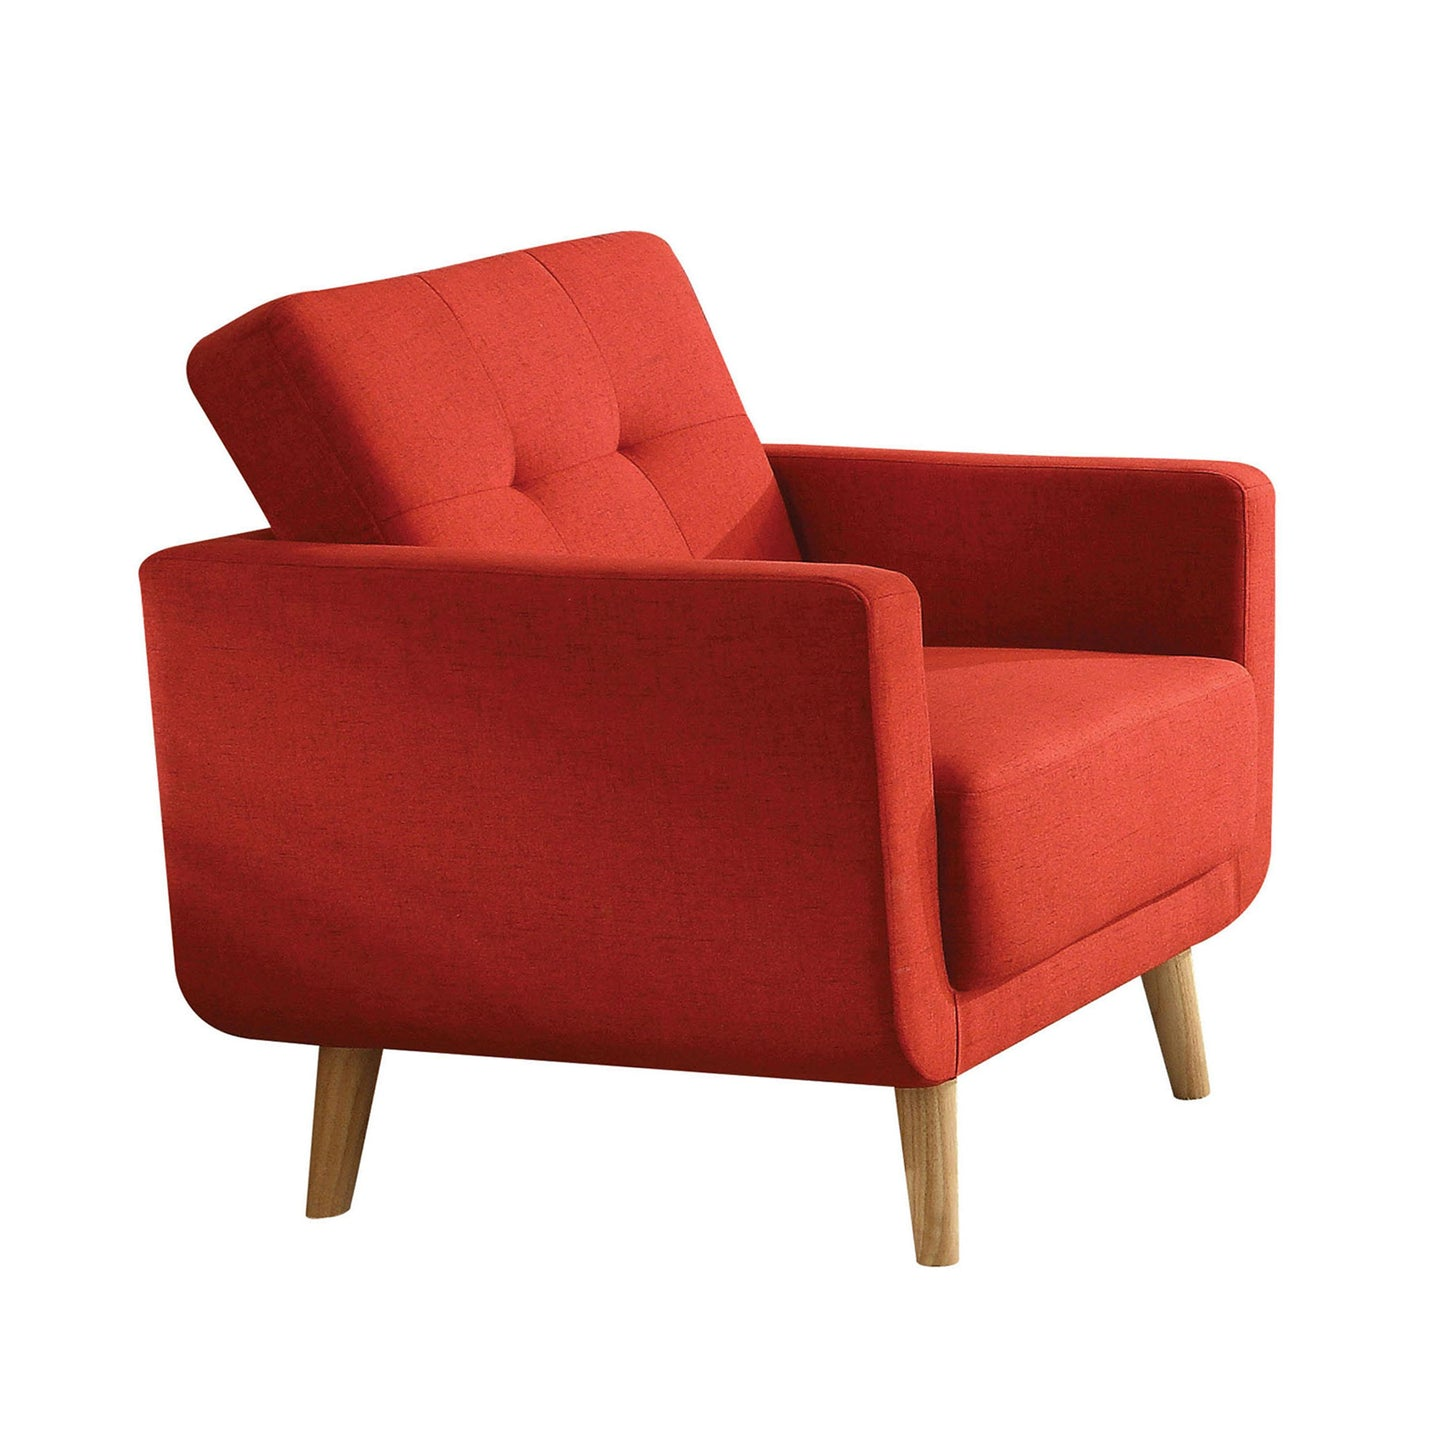 Acme 52662 Sisilla Contemporary Red Fabric Chair